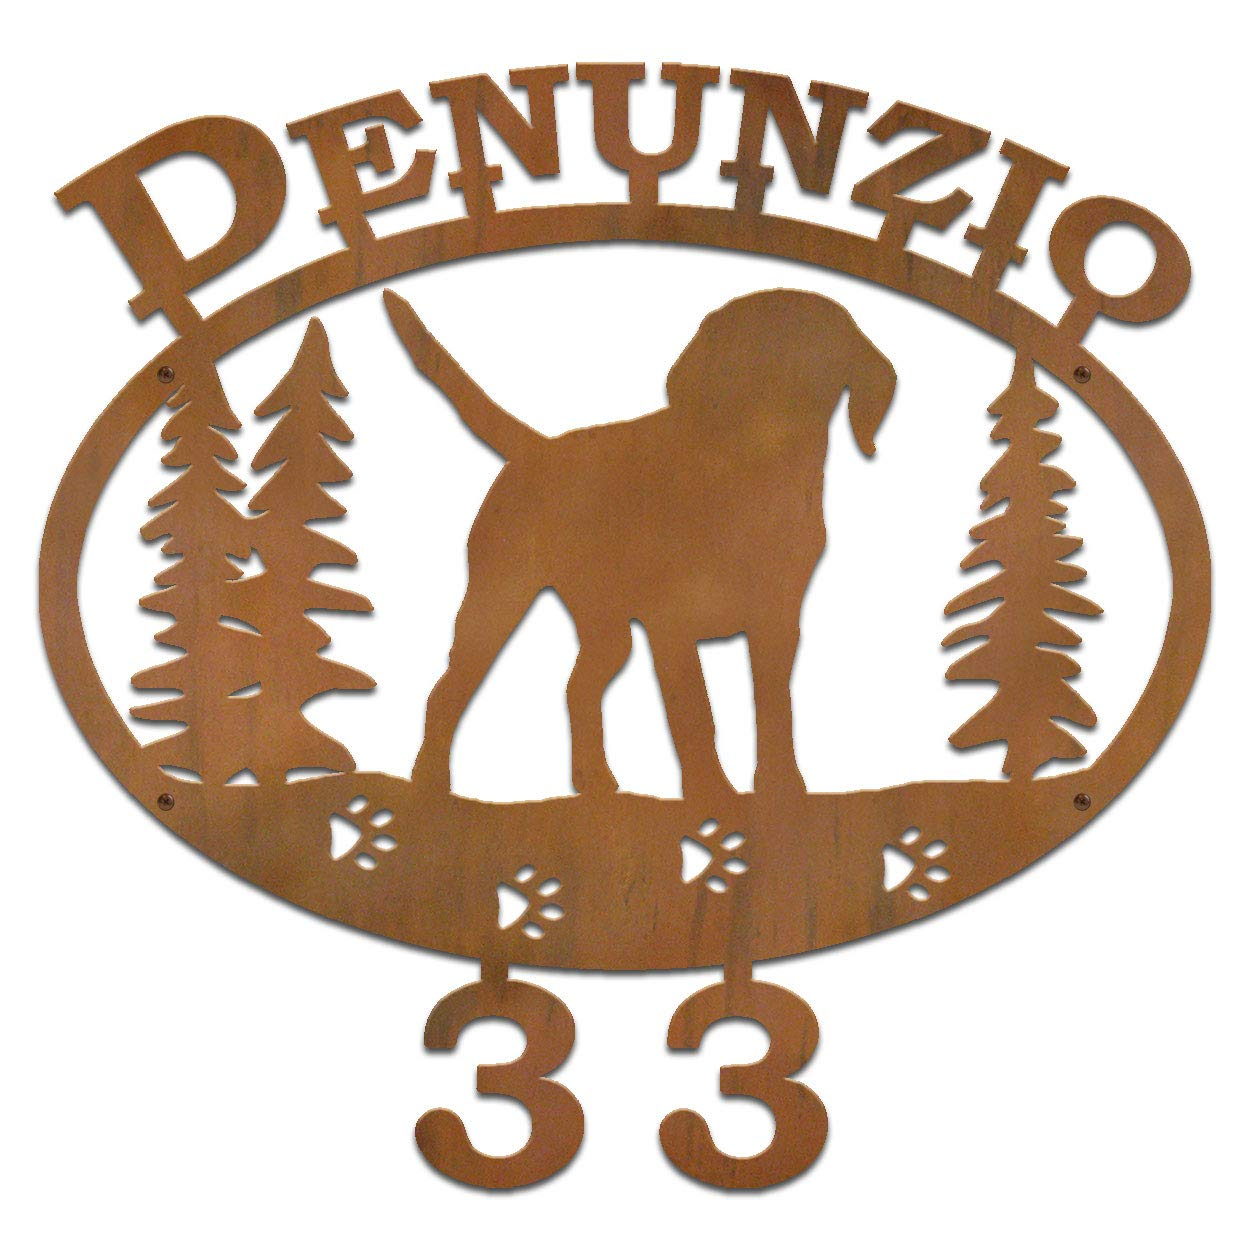 Cold Nose Creations Beagle Dog Breed 22in Oval Steel Custom Address Name and Numbers Sign - Rust Metal Finish - Made in USA